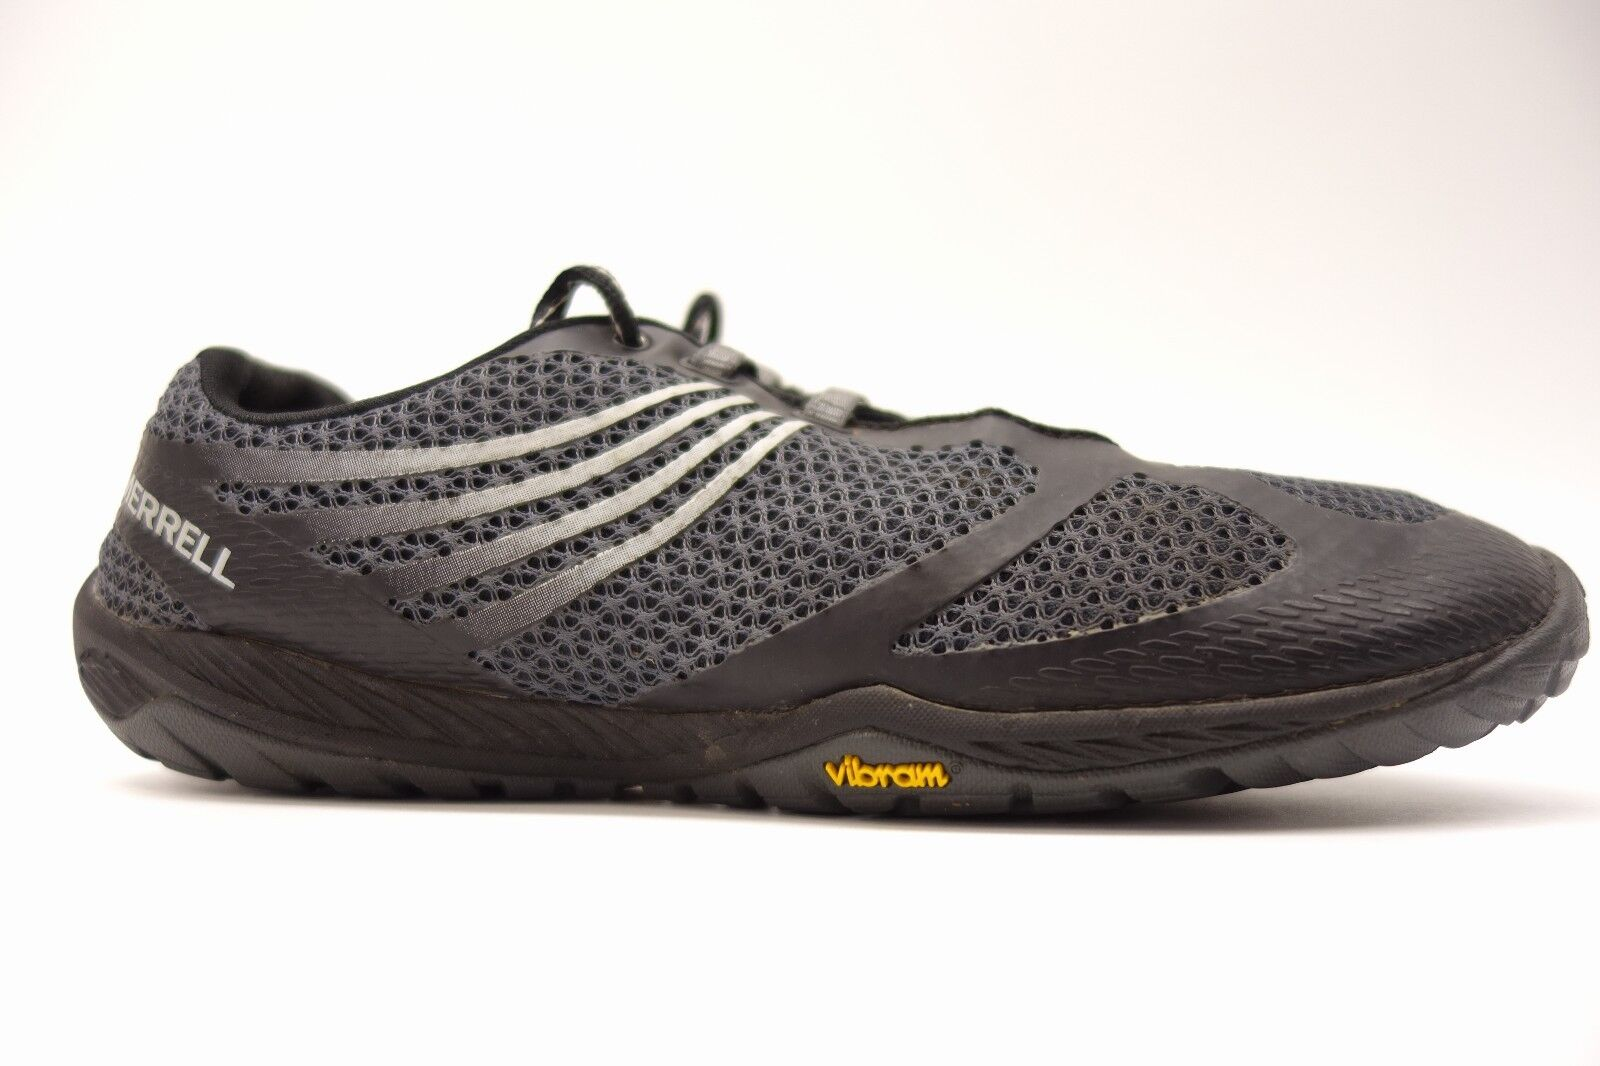 Merrell Damenschuhe Pace Glove 3 Mesh Breathable Omni-Fit Athletic Schuhes Größe 9.5